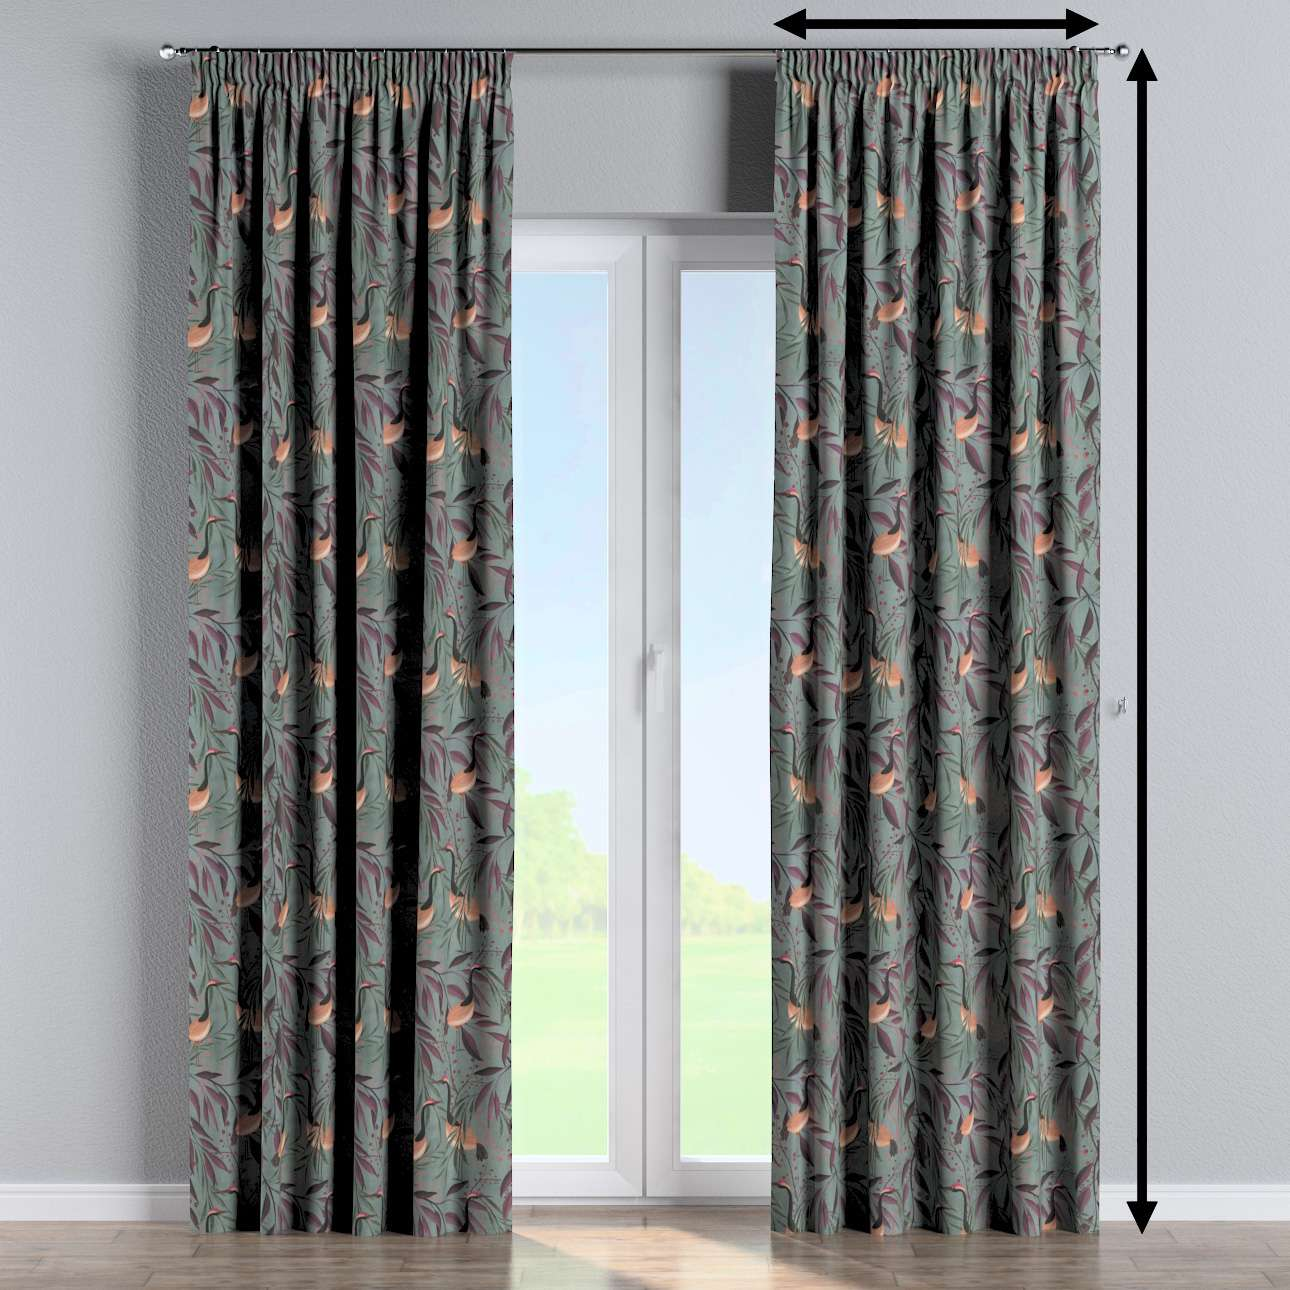 Pencil pleat curtains in collection Abigail, fabric: 143-11